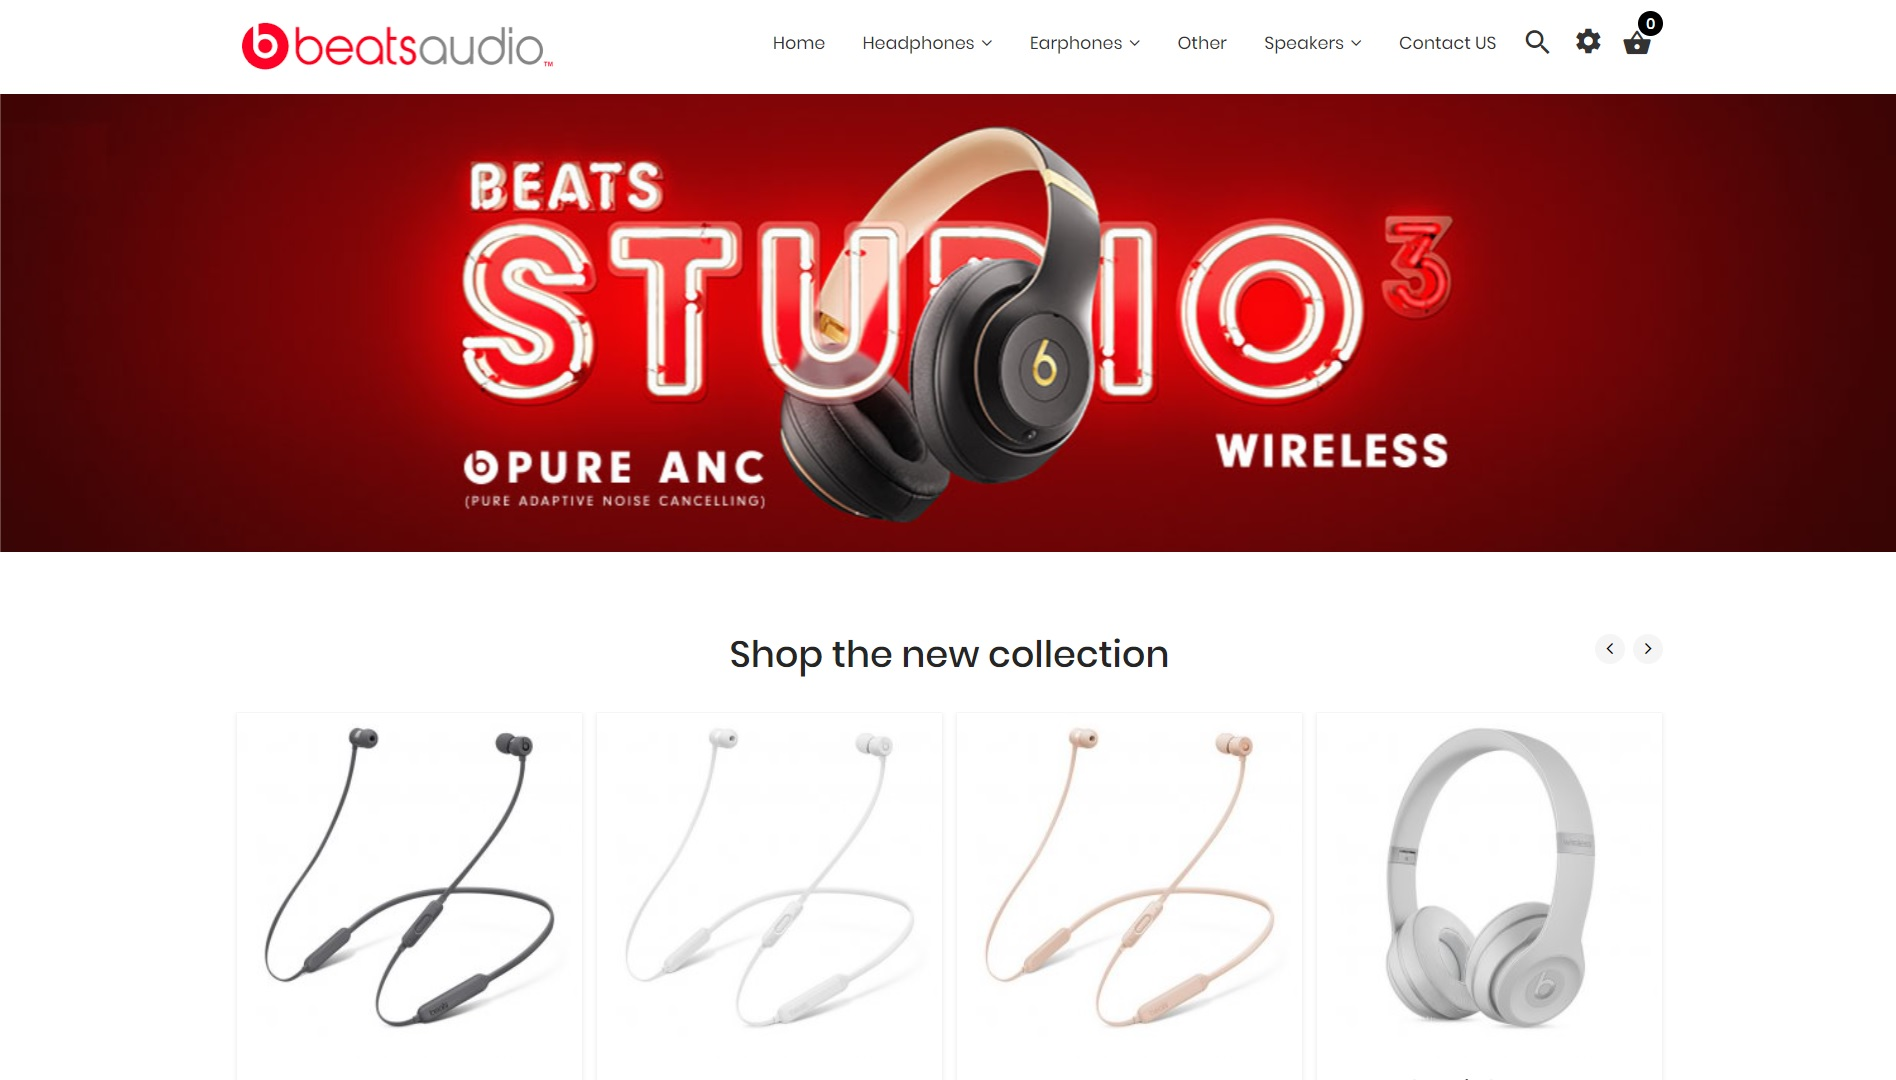 Is Ibestores a Scam? Review of the Beats Audio Online Store